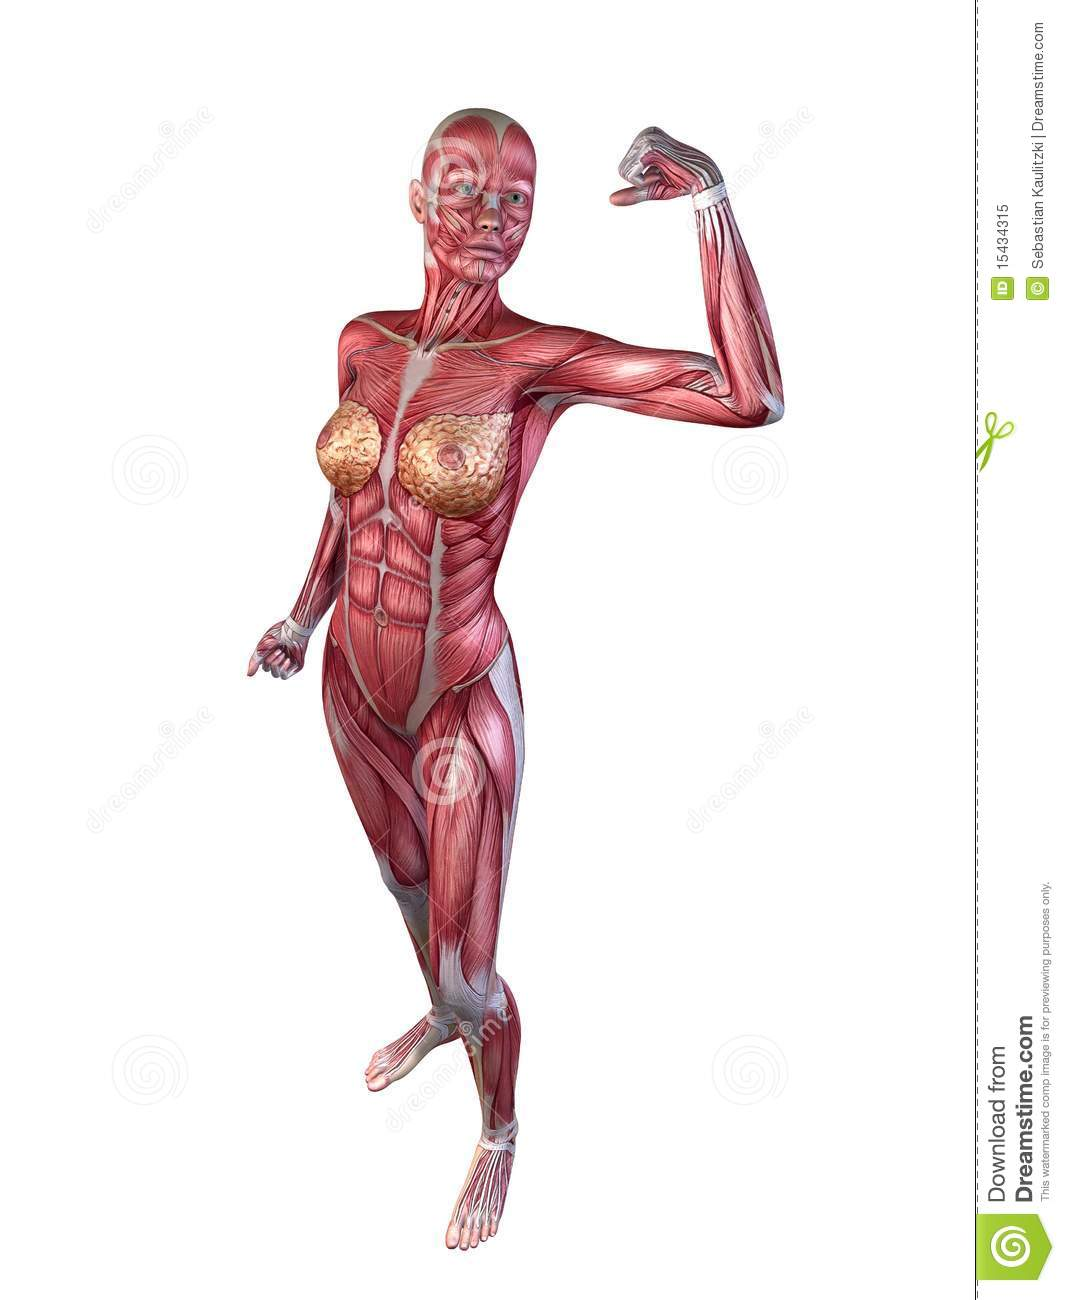 female muscular system royalty free stock photo - image: 15434315, Muscles